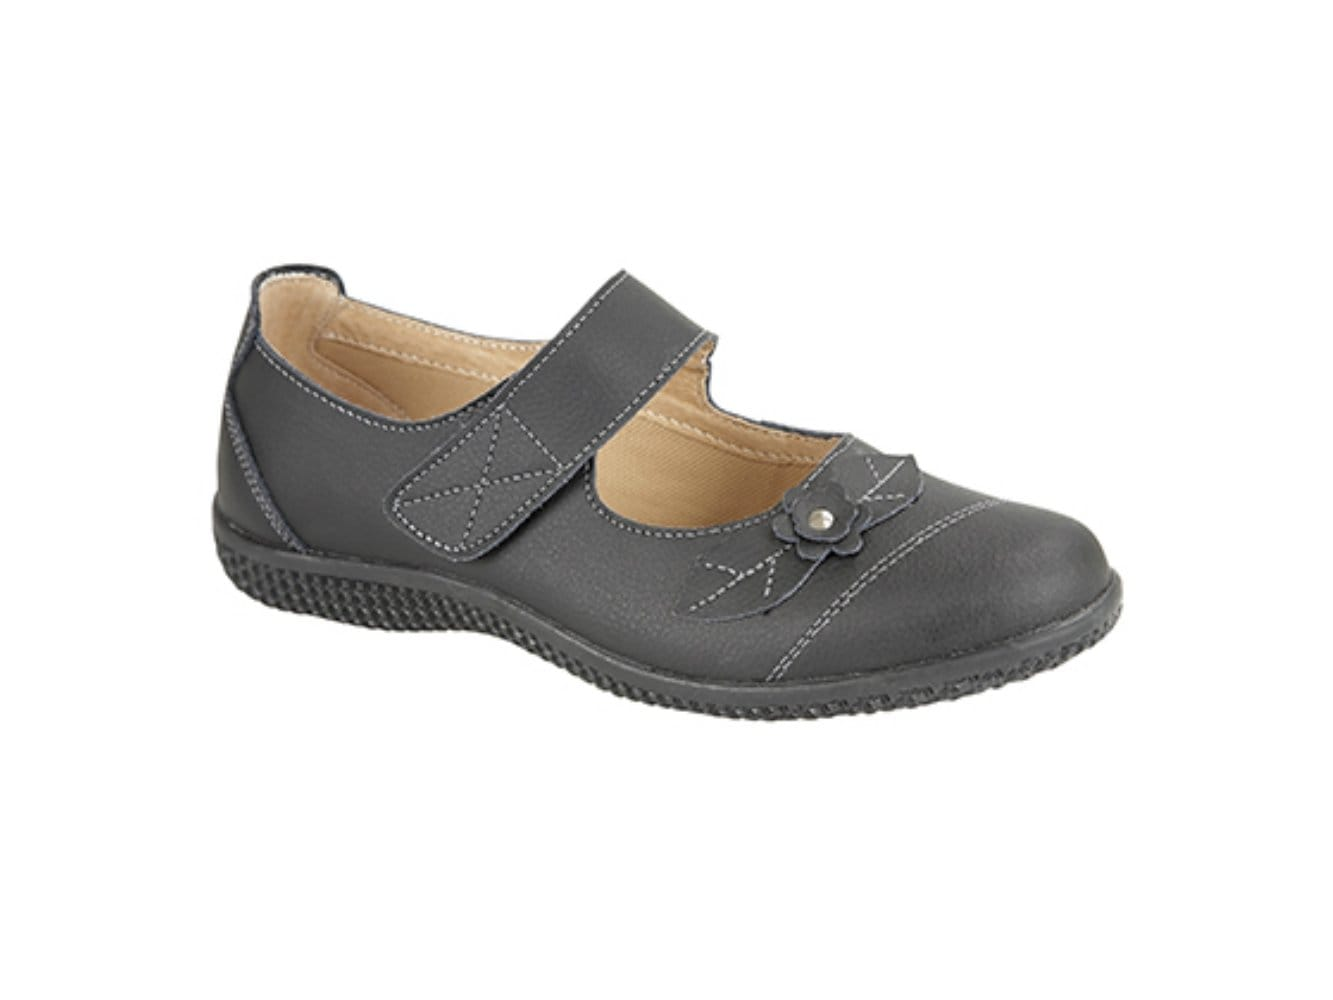 Boulevard femme confortable cuir touch attachez eee wide fit mary jane chaussures noir